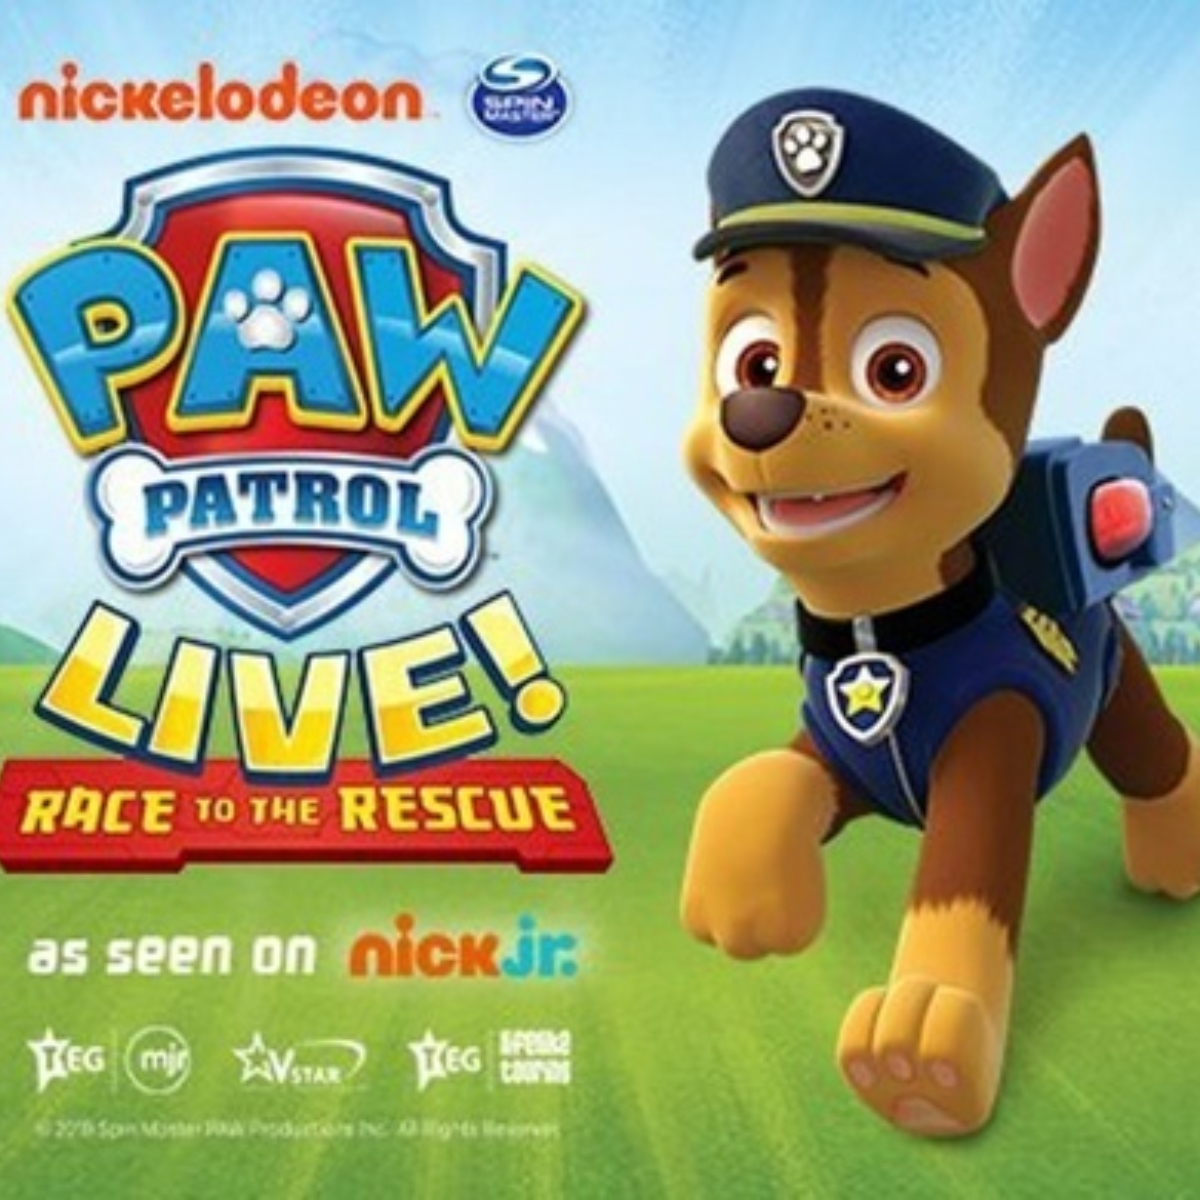 PAW PATROL LIVE! - Race to the Rescue (Newcastle) Images